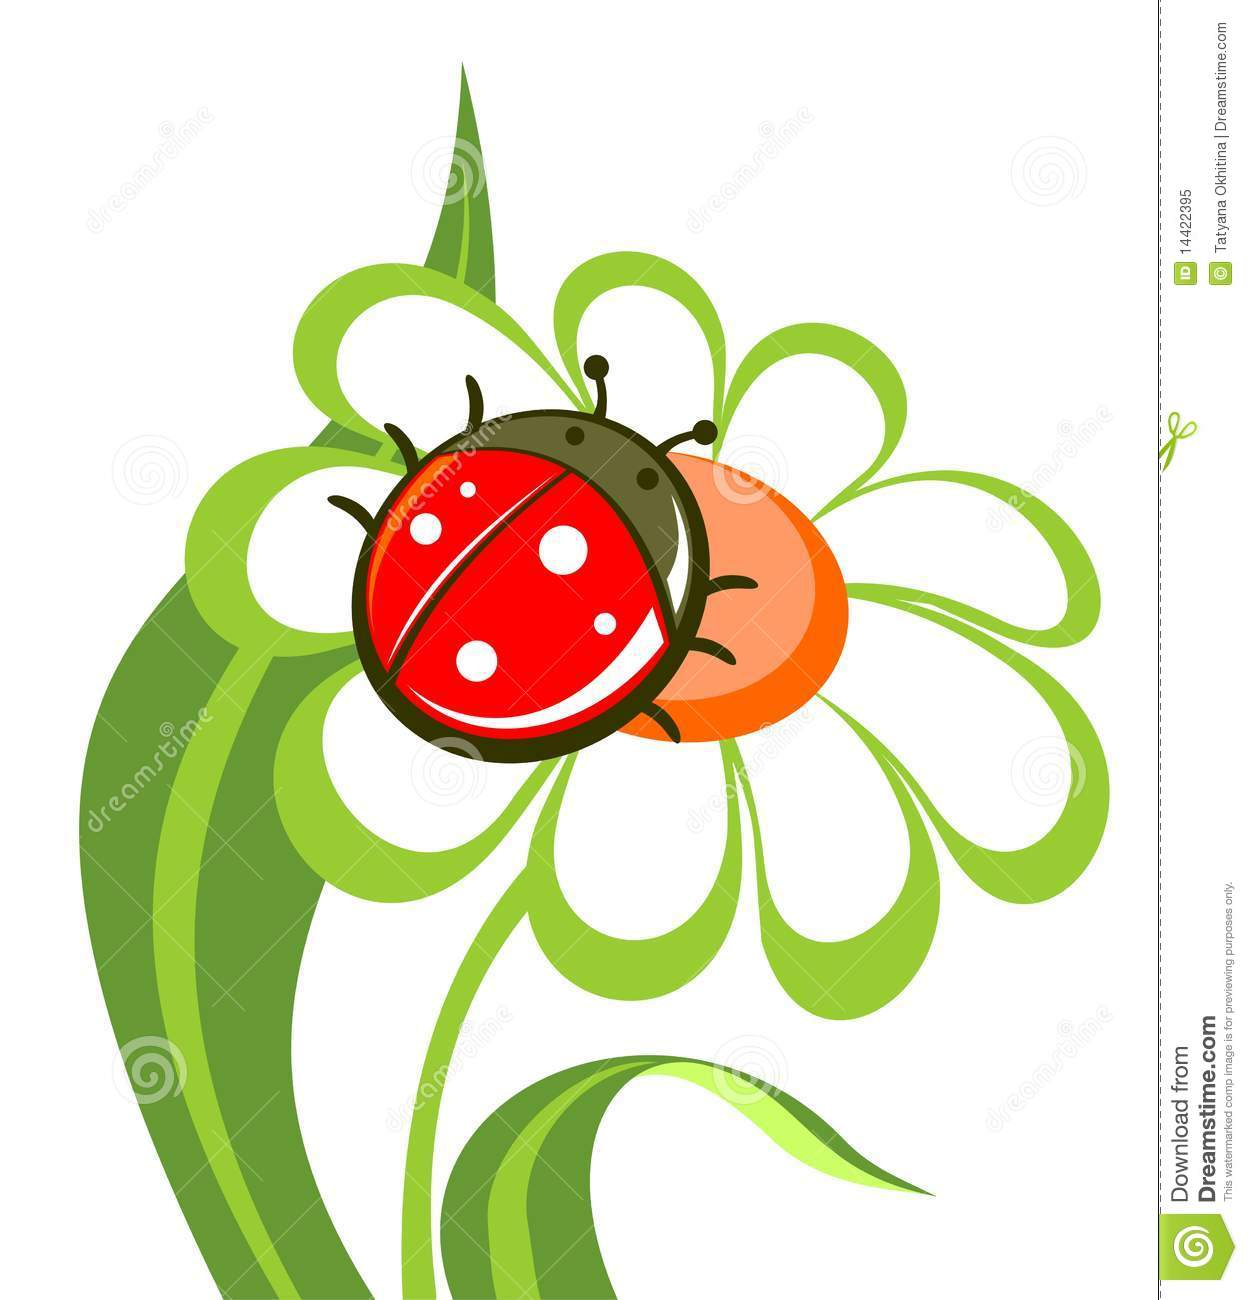 Flower With Ladybird Royalty Free Stock Photo - Image: 14422395